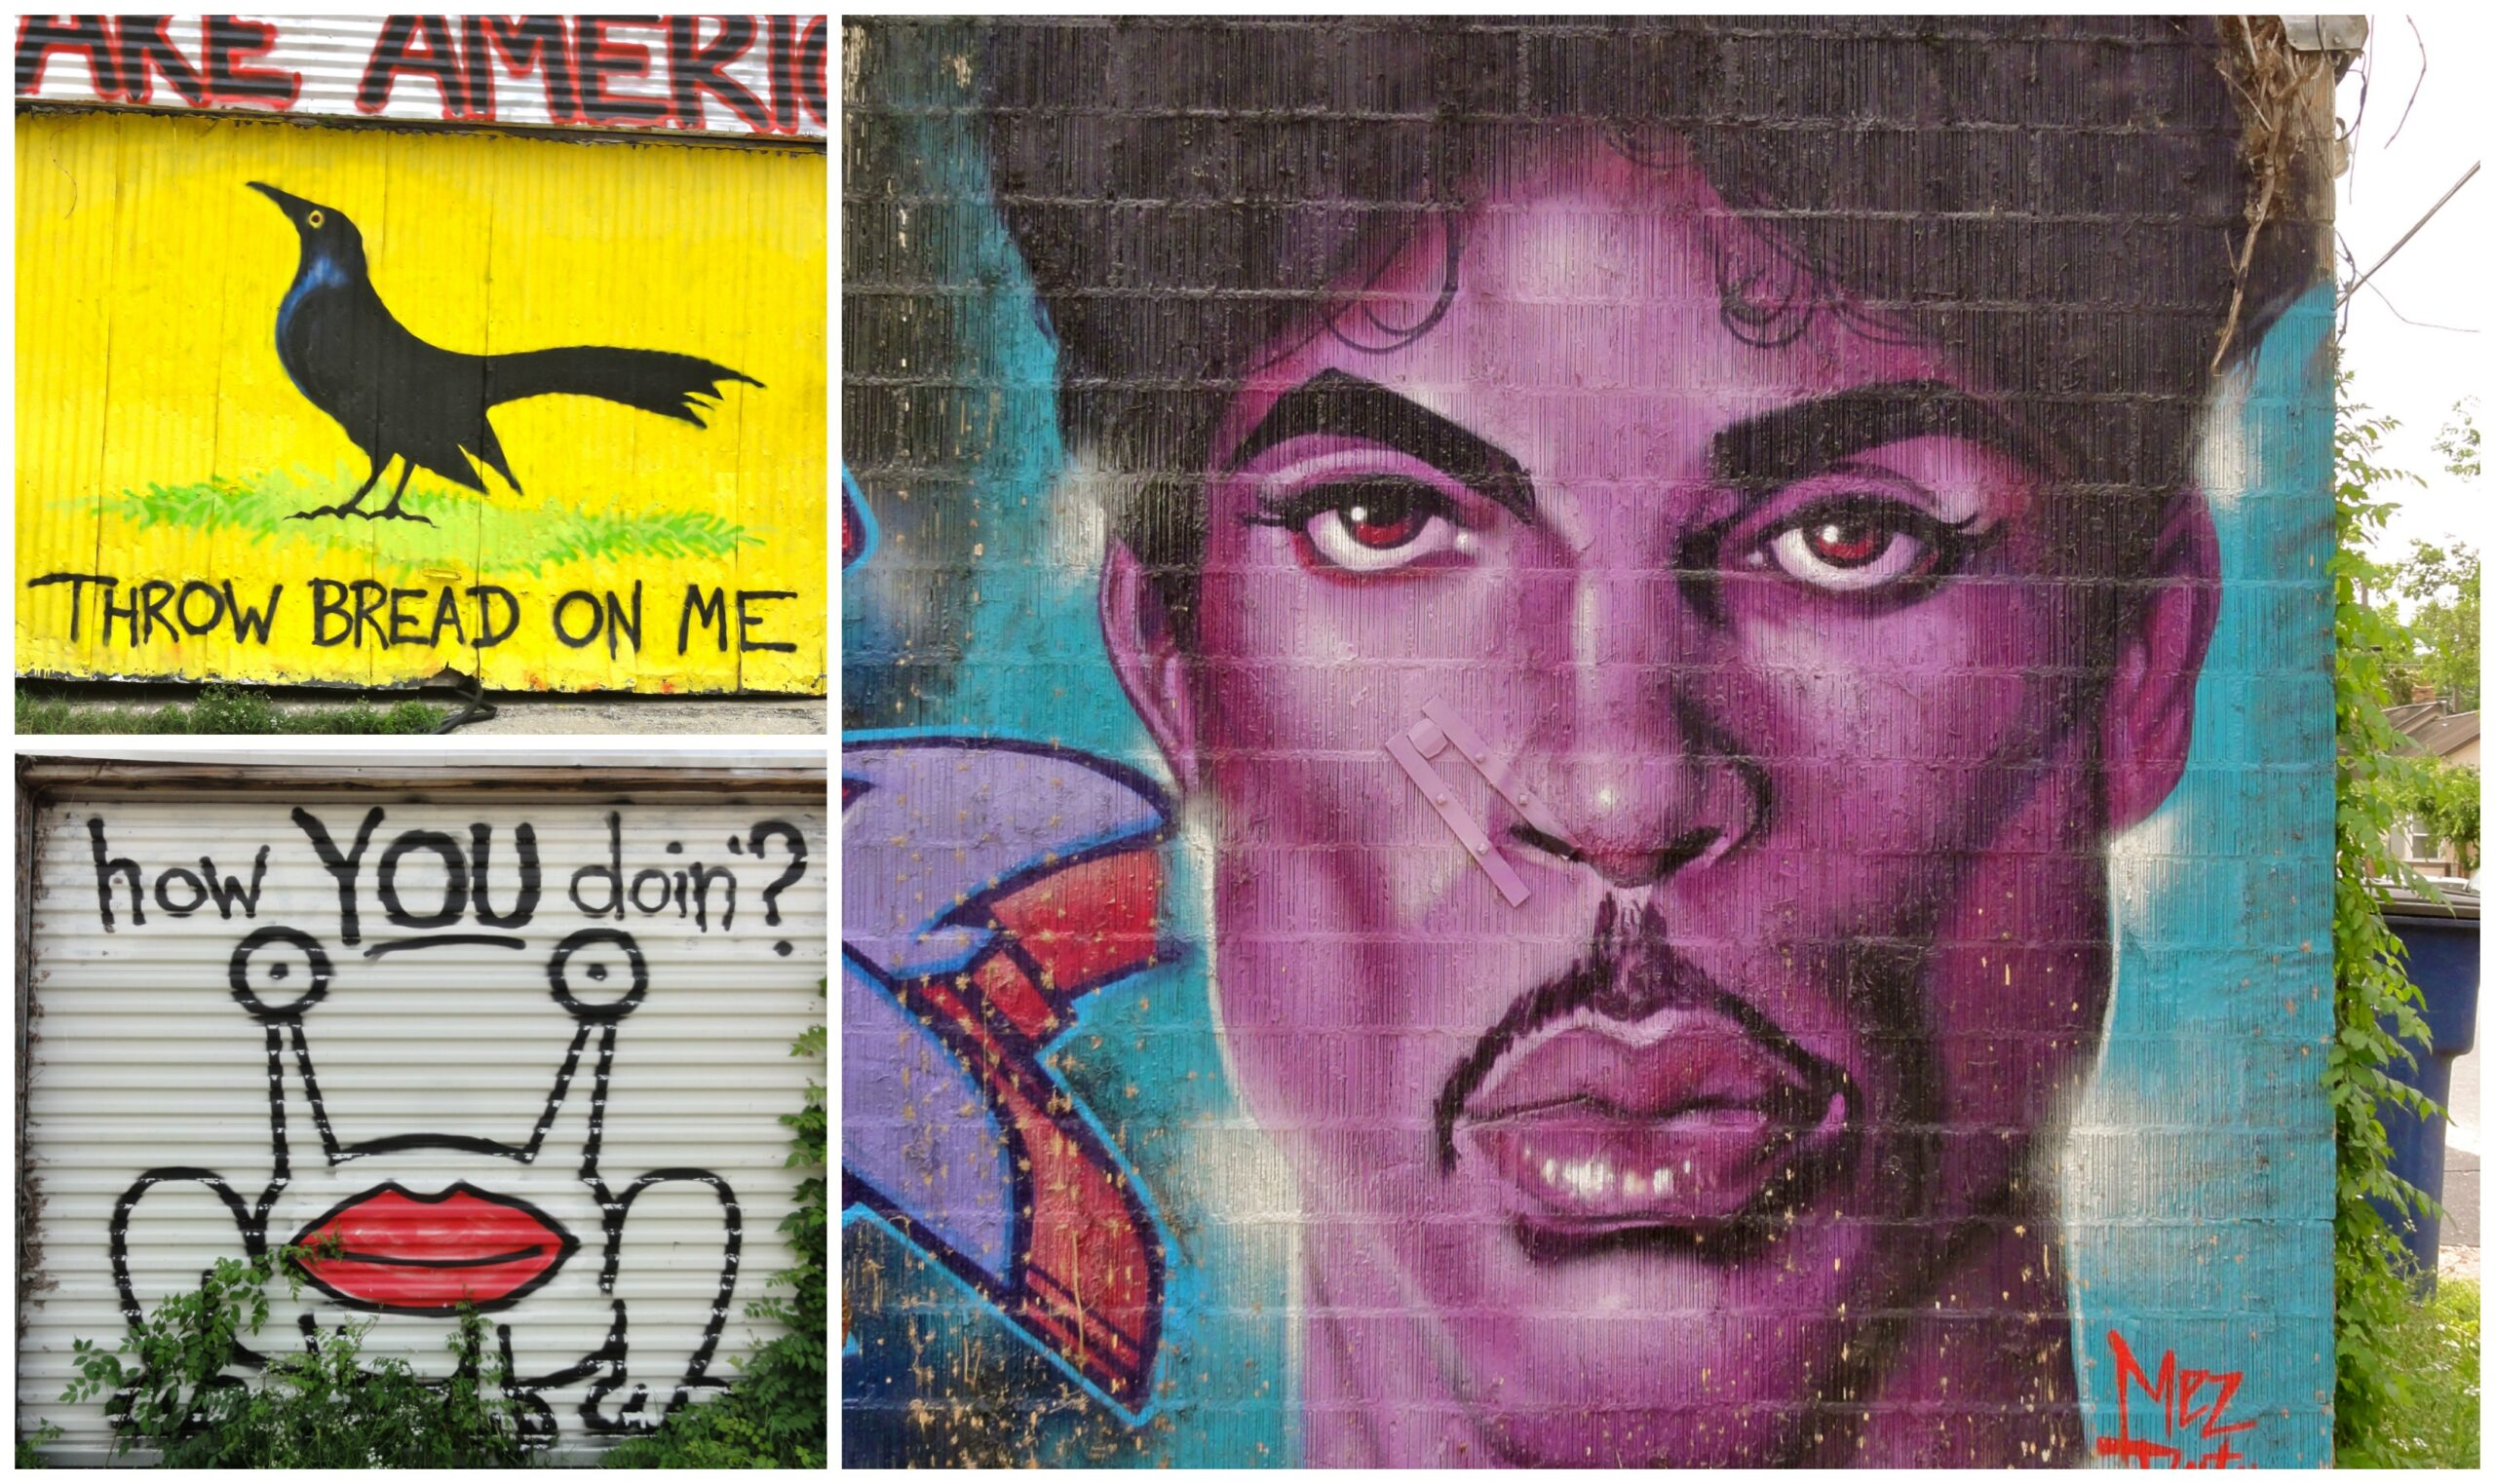 Prince and How You Doin Murals